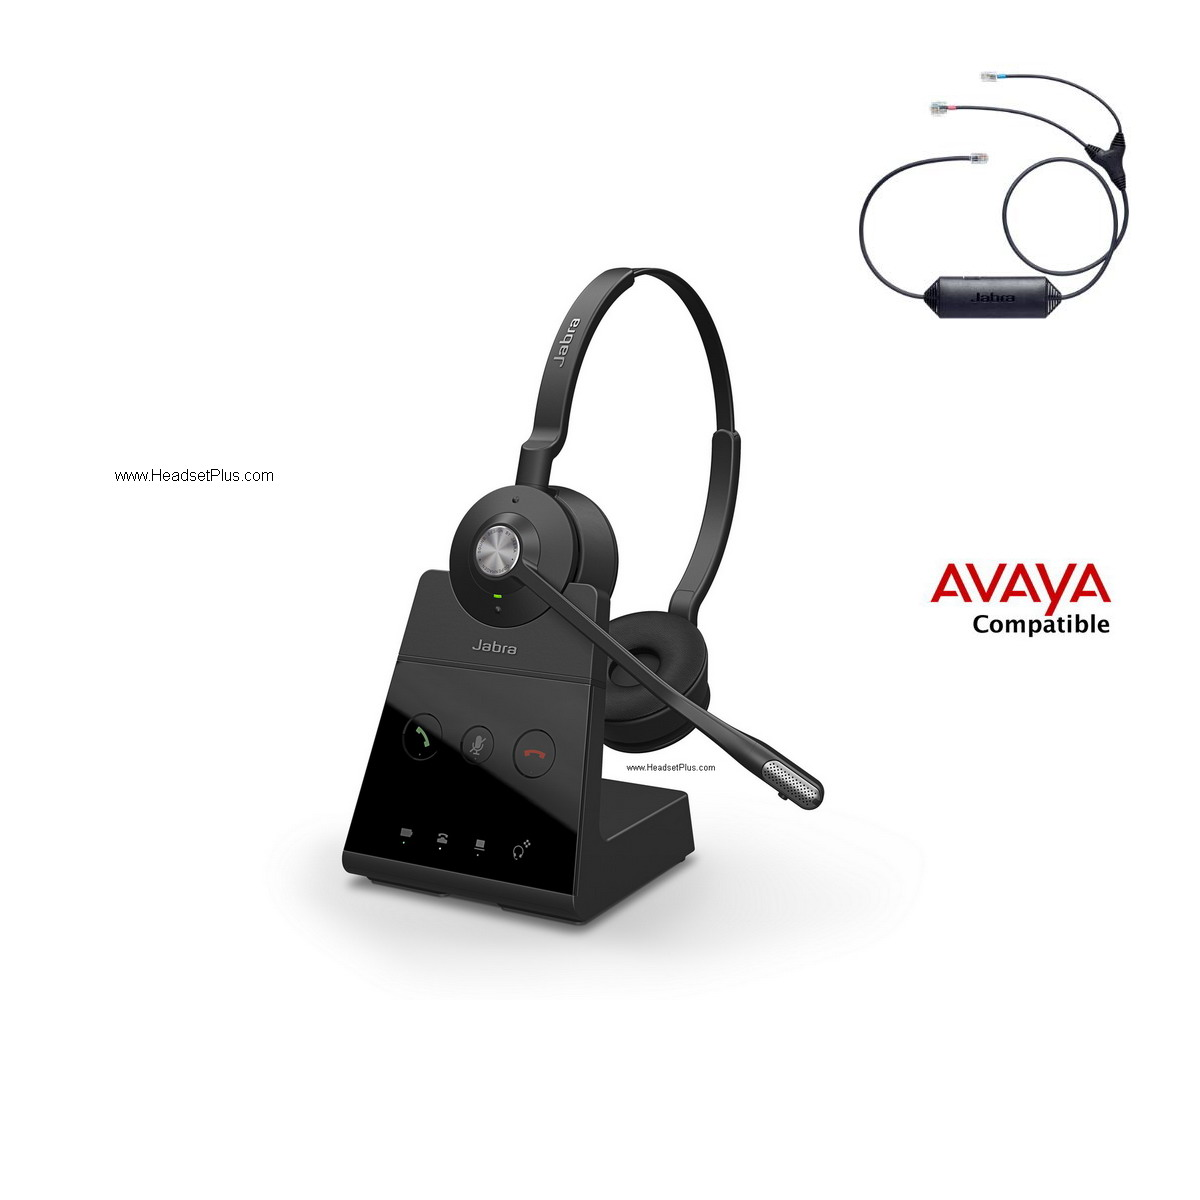 Jabra Engage 65 Stereo+EHS Avaya 1400 9400 9500 9600 Phones